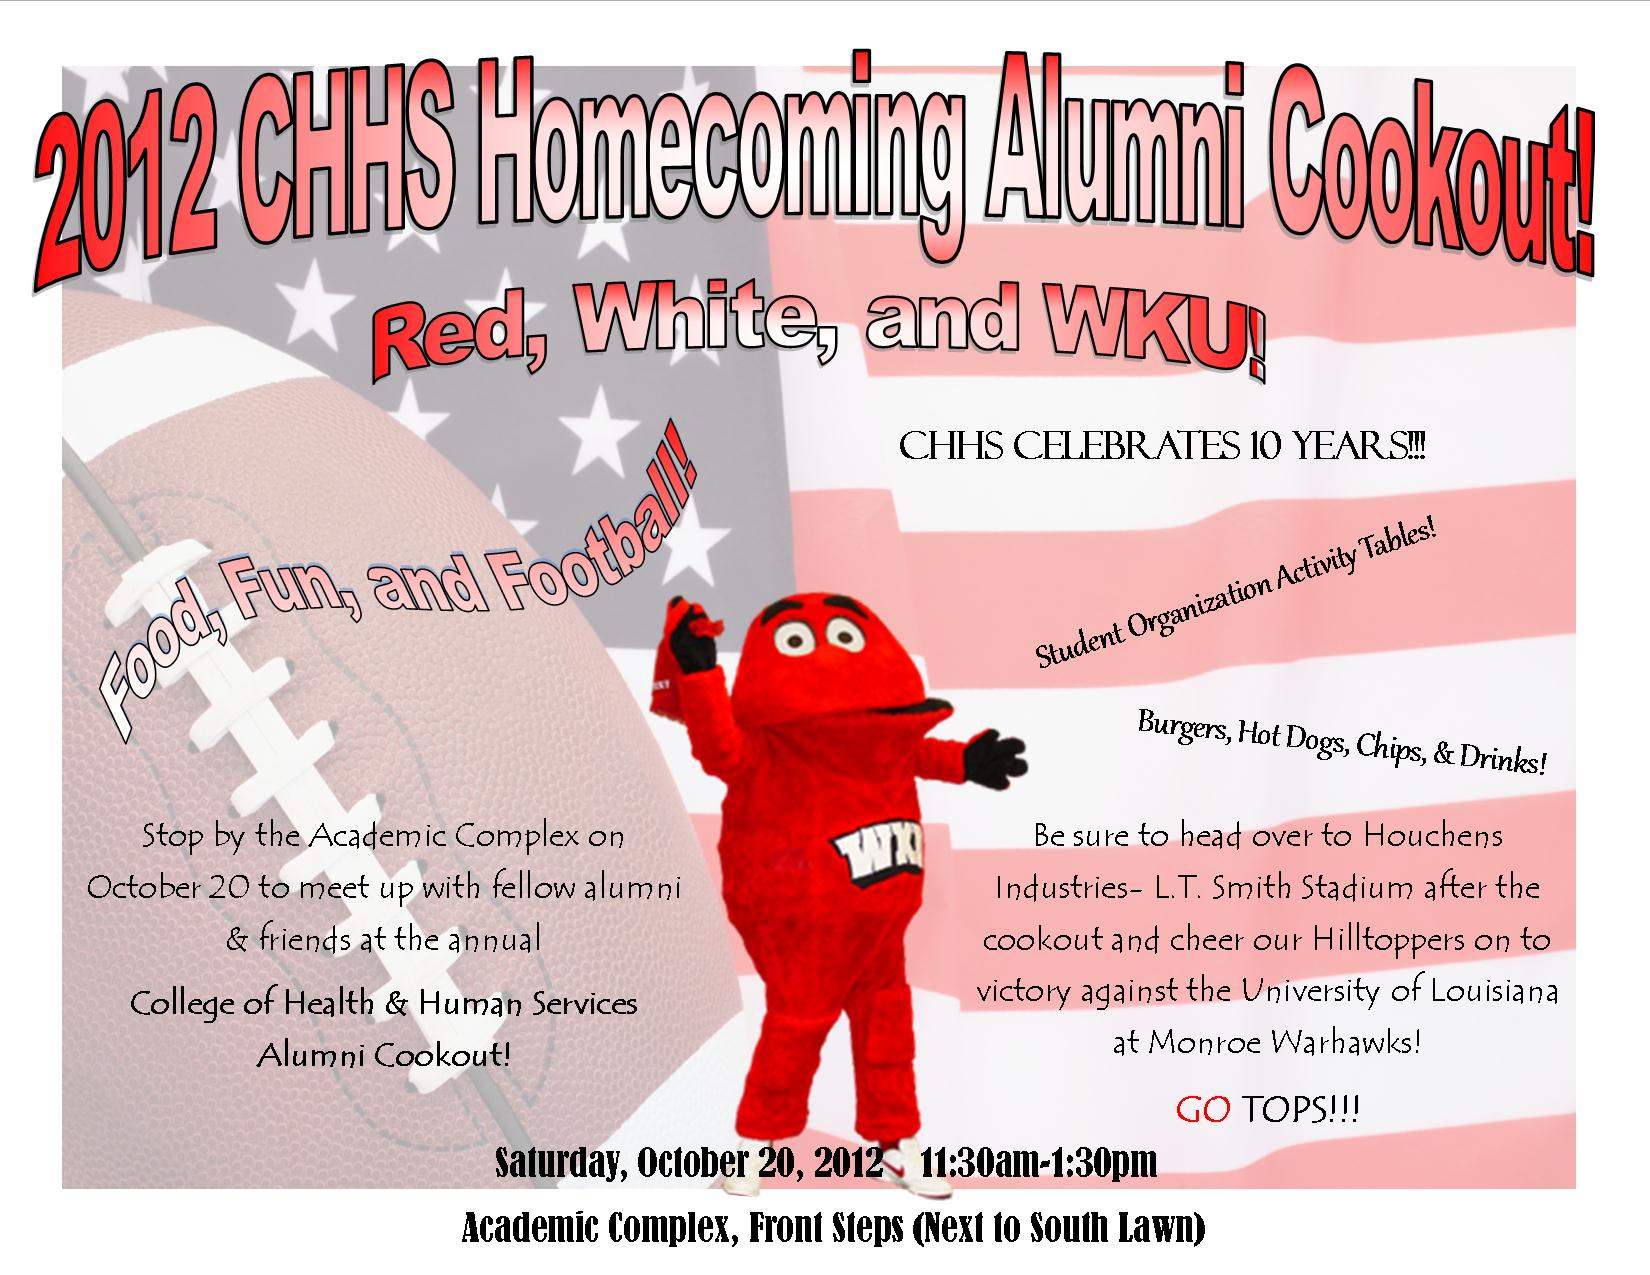 CHHS Homecoming Alumni Cookout